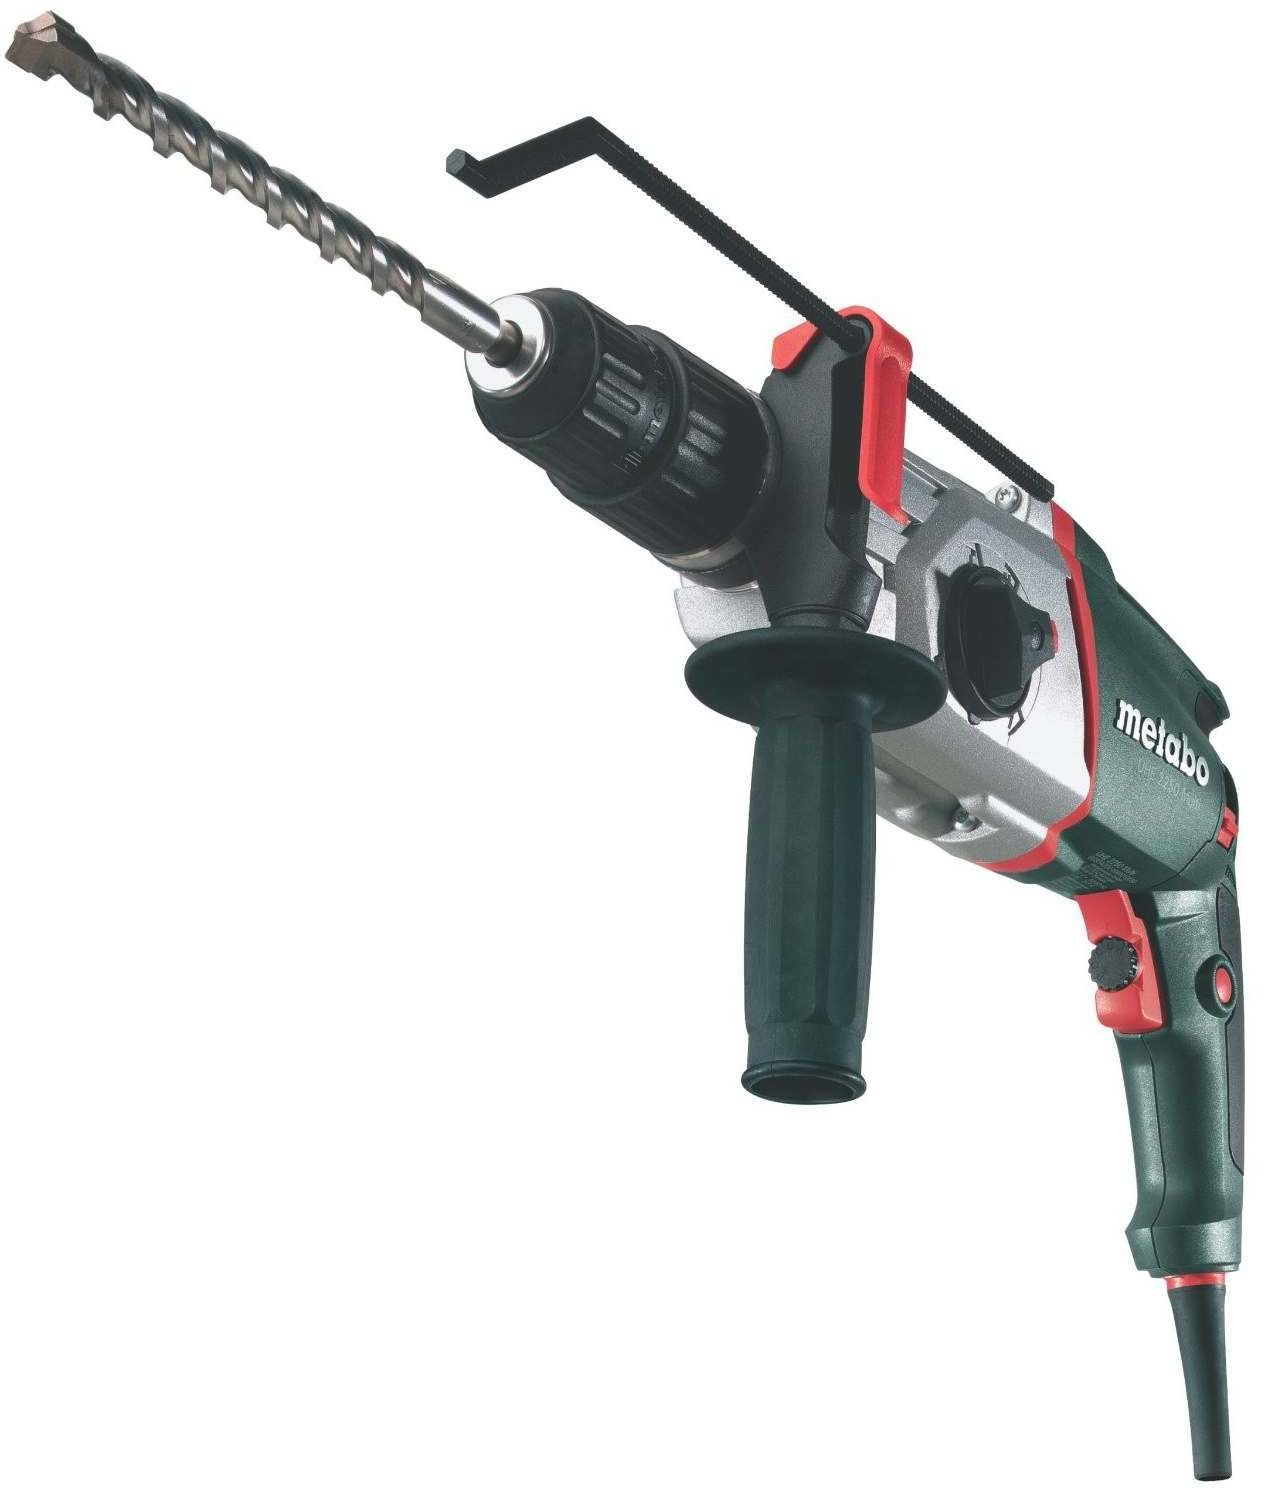 metabo uhe 2250 multi test bohrhammer. Black Bedroom Furniture Sets. Home Design Ideas